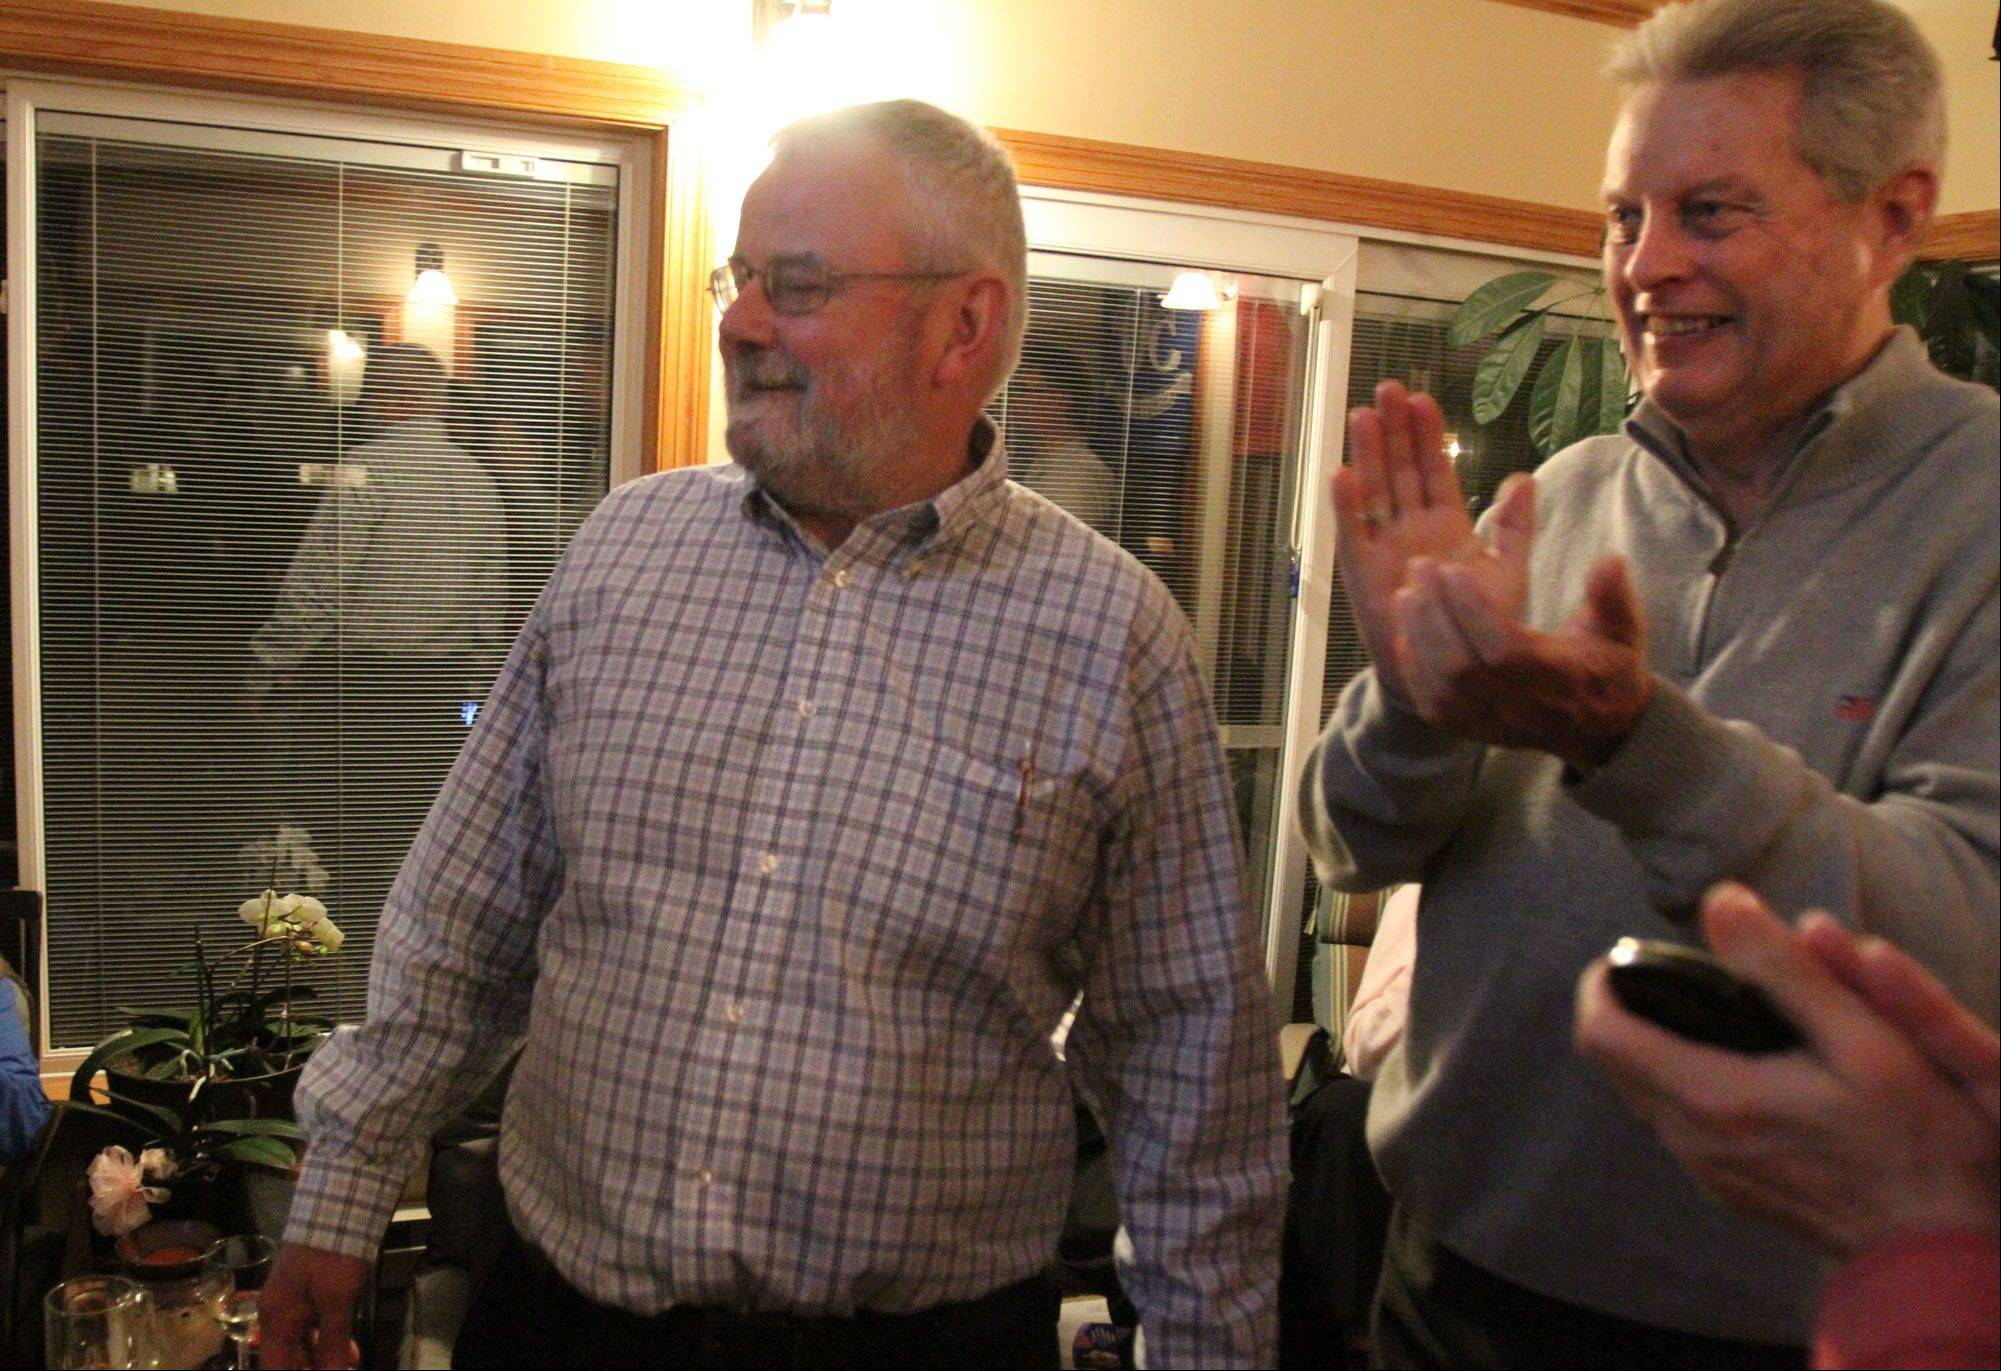 Hoffman Estates mayoral candidate Bill McLeod celebrates election results with longtime friend and former state Rep. Bob Bergman at McLeod's home in Hoffman Estates.